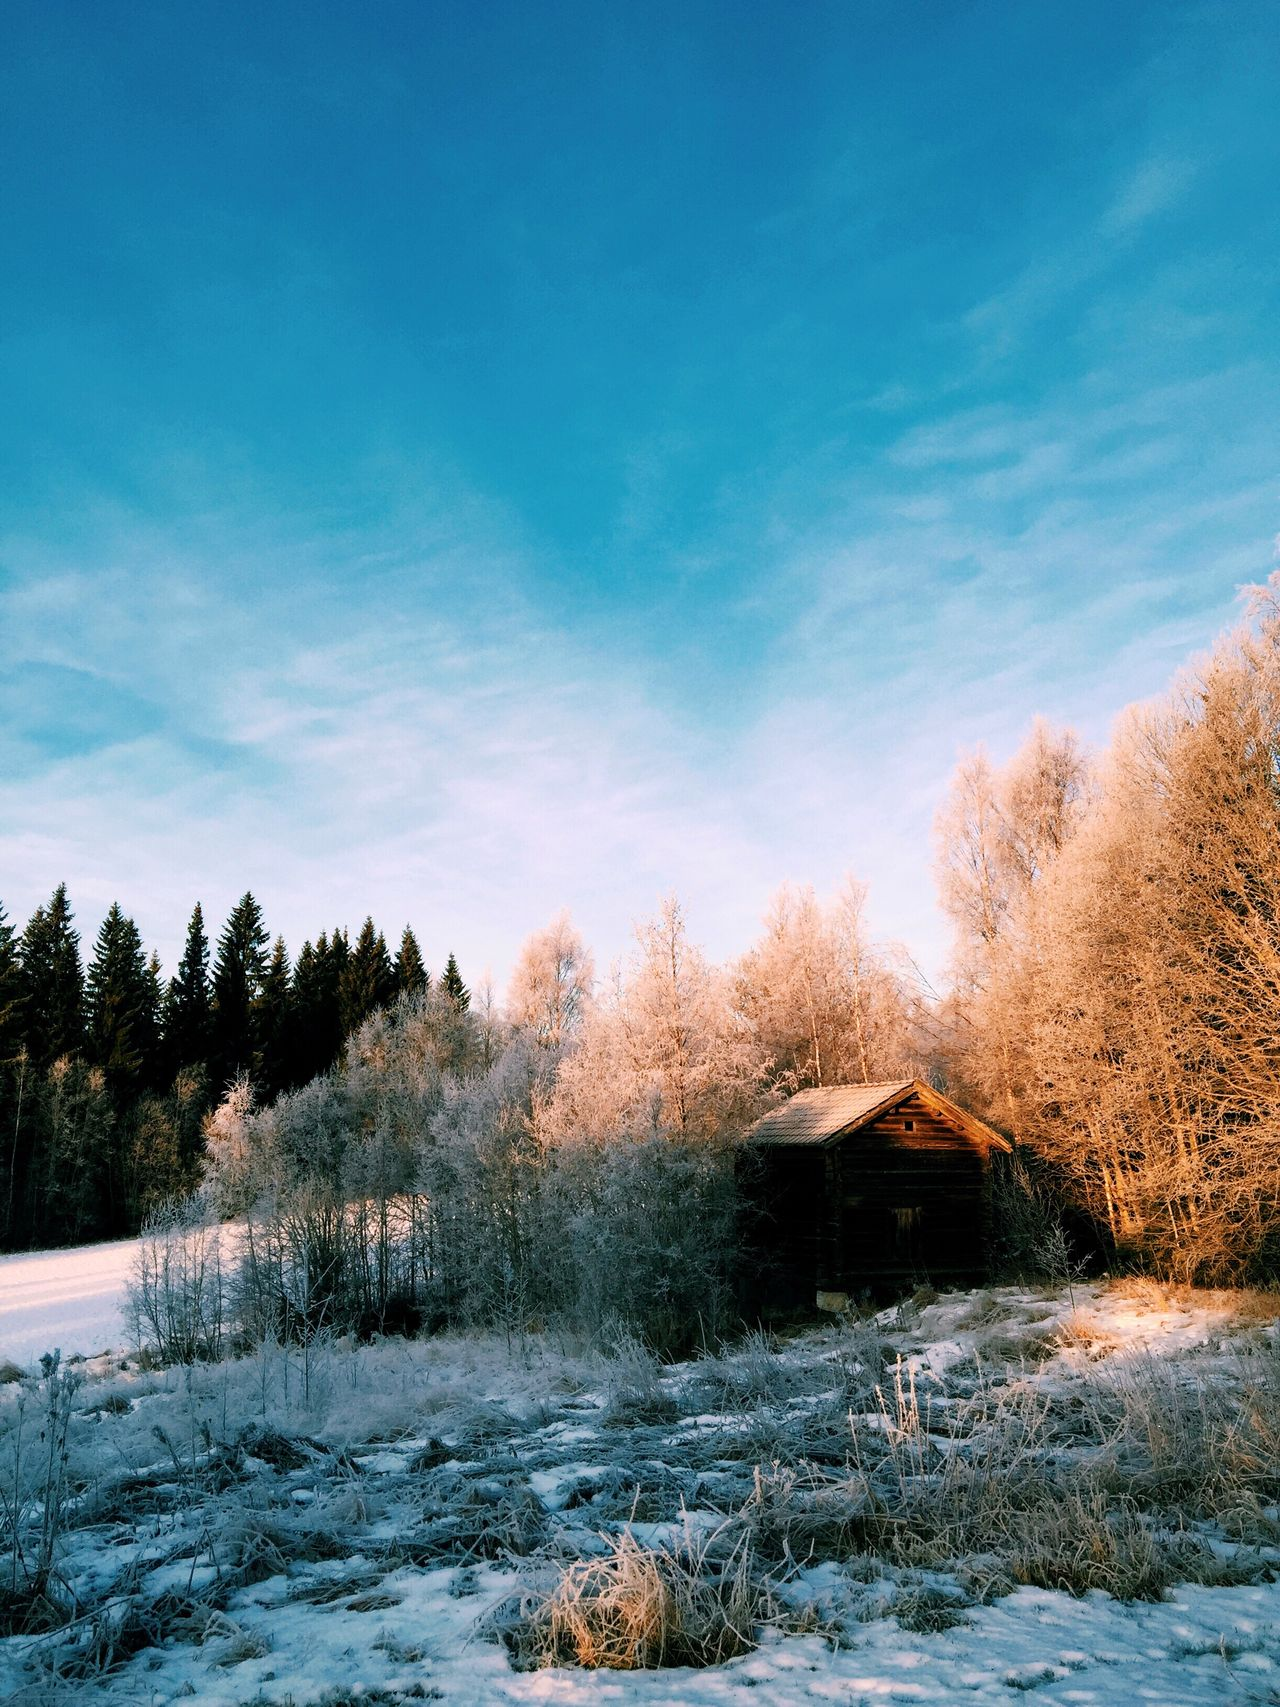 Just had to post this again from another angle. Winter Wonderland Wintertime ⛄ Winter Snow Sweden EyeEm Best Shots Barn Retrica IPhoneography Showcase: January